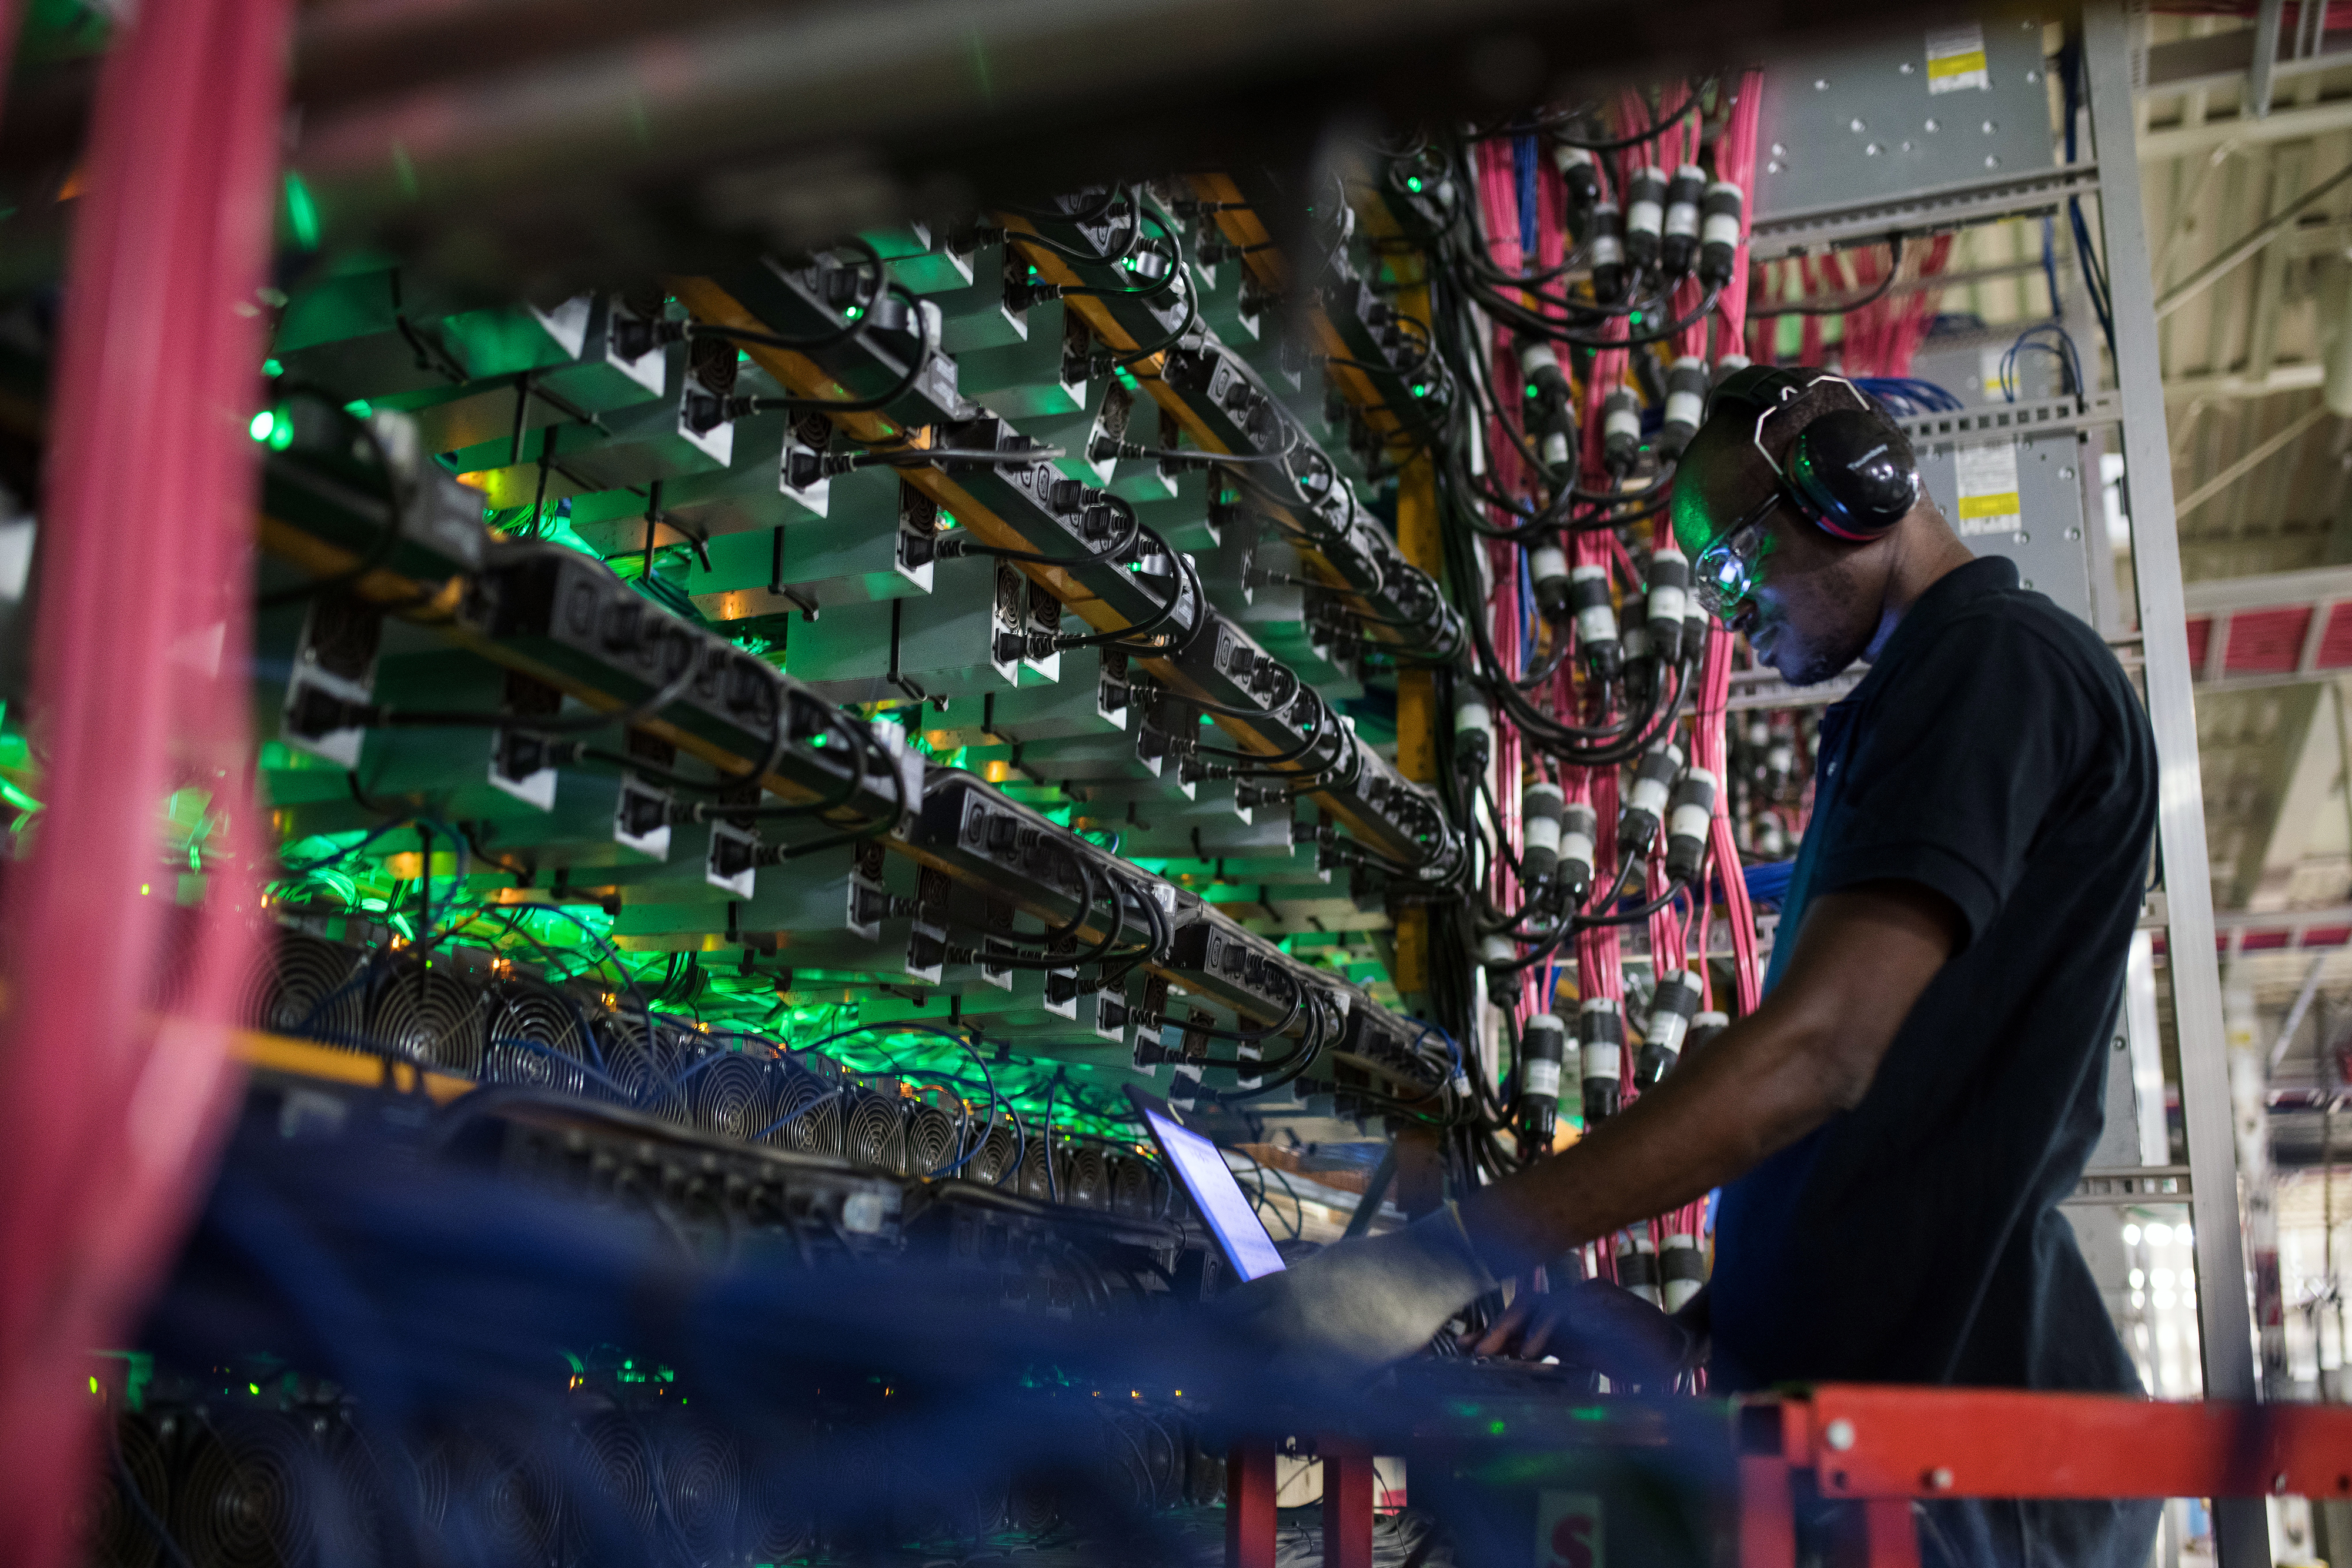 china plans to ban cryptocurrency mining in renewed clampdown